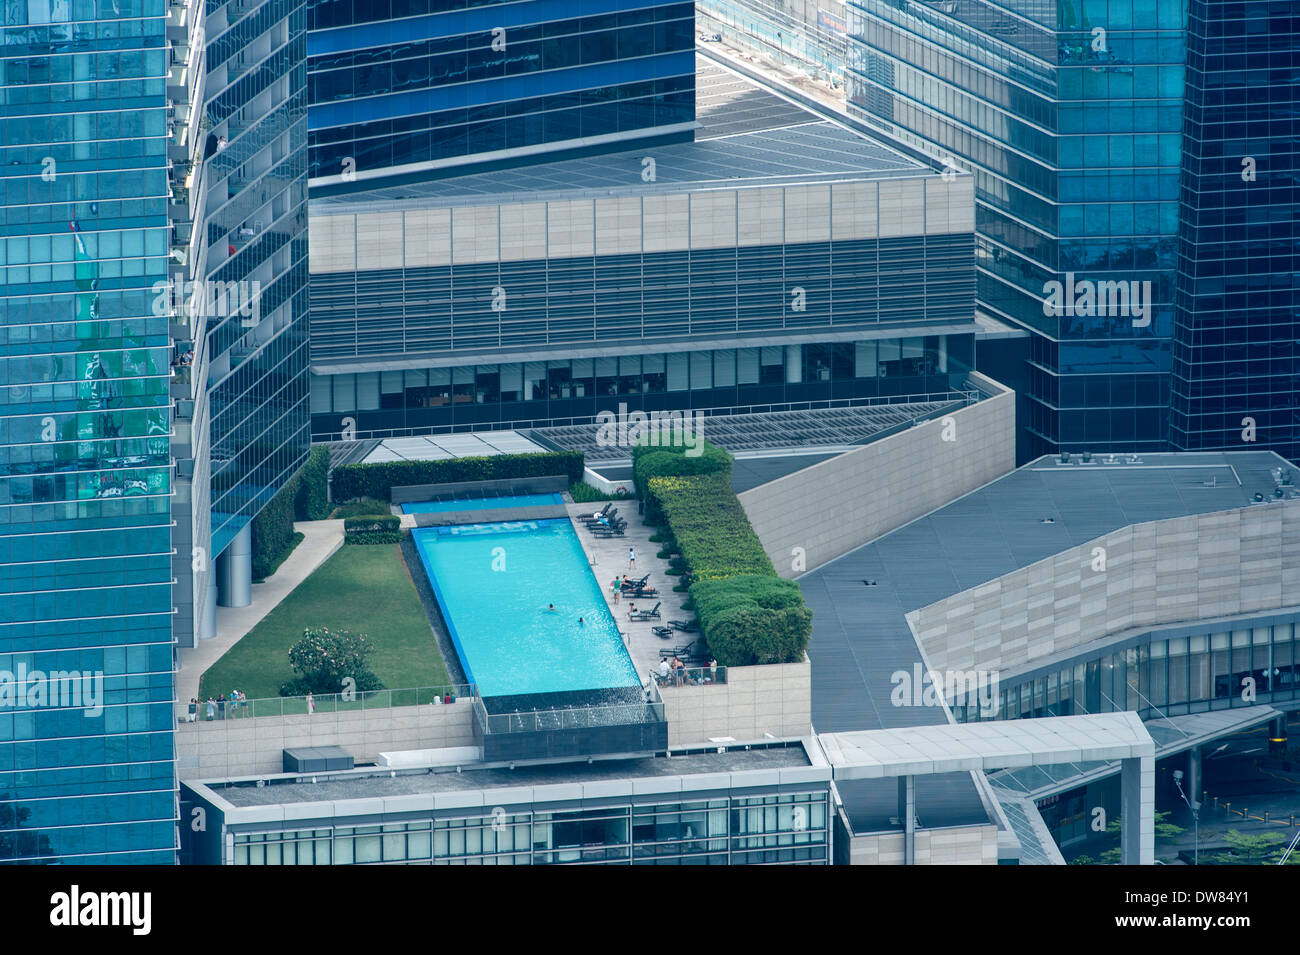 Swimming Pool On The Roof Of A Building In Singapore Stock Photo Royalty Free Image 67177013